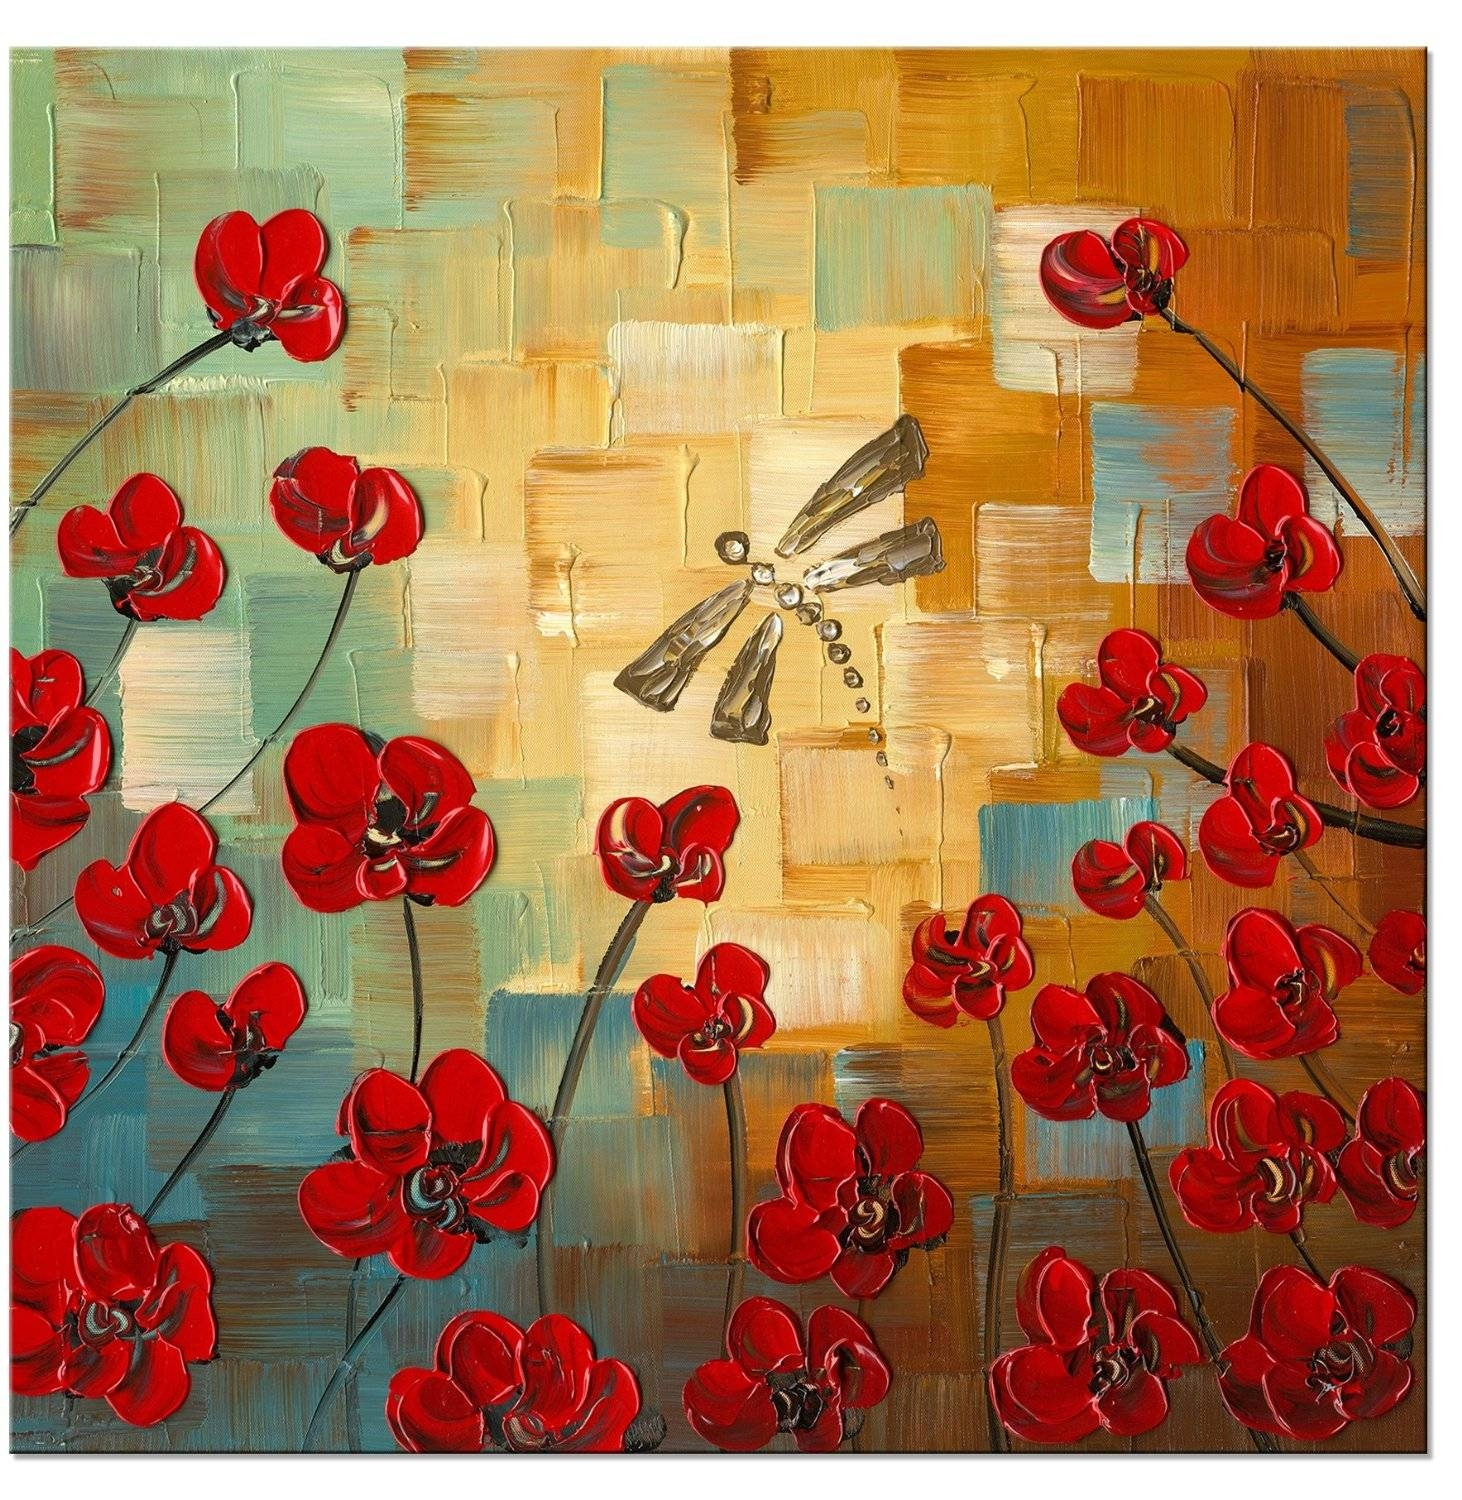 Dragonfly Modern Canvas Art Wall Decor Floral Oil Painting Wall Intended For Most Popular Oil Painting Wall Art On Canvas (View 14 of 20)